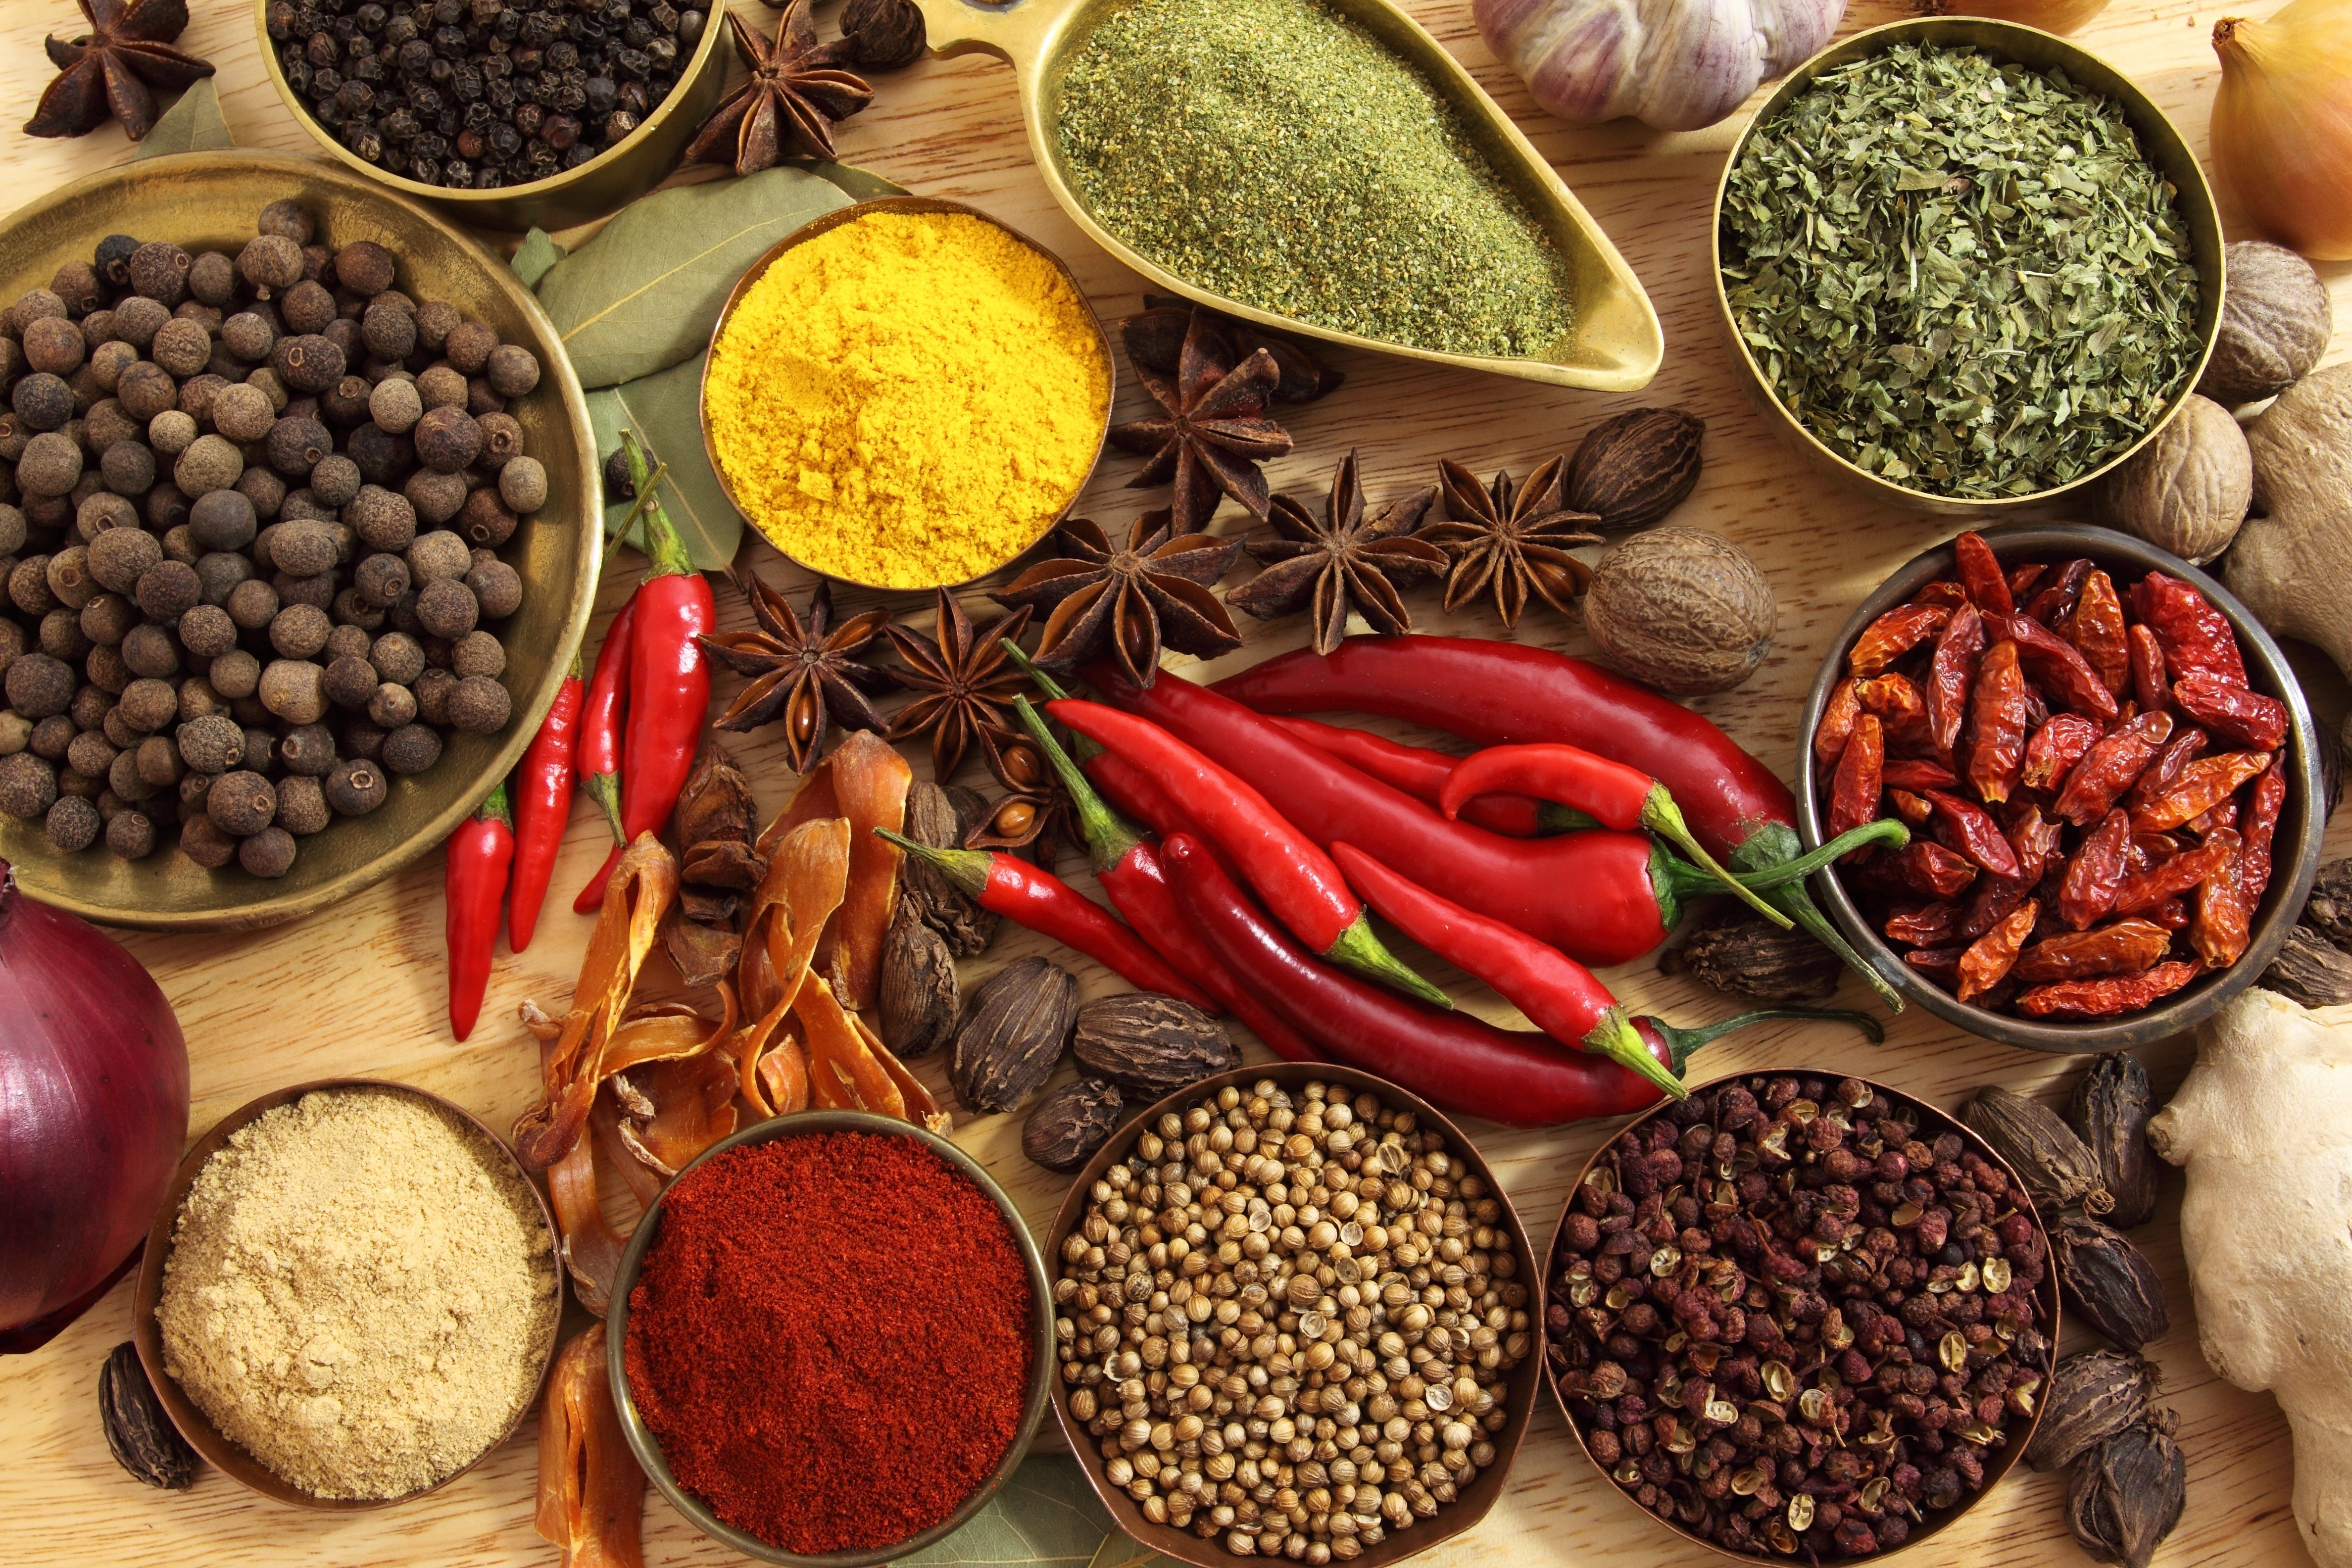 Spices, Seasonings, Red pepper, Black pepper, Pepper, Star anise, Onion, Ginger, Garlic, Walnuts, Bay leaf HD Wallpapers